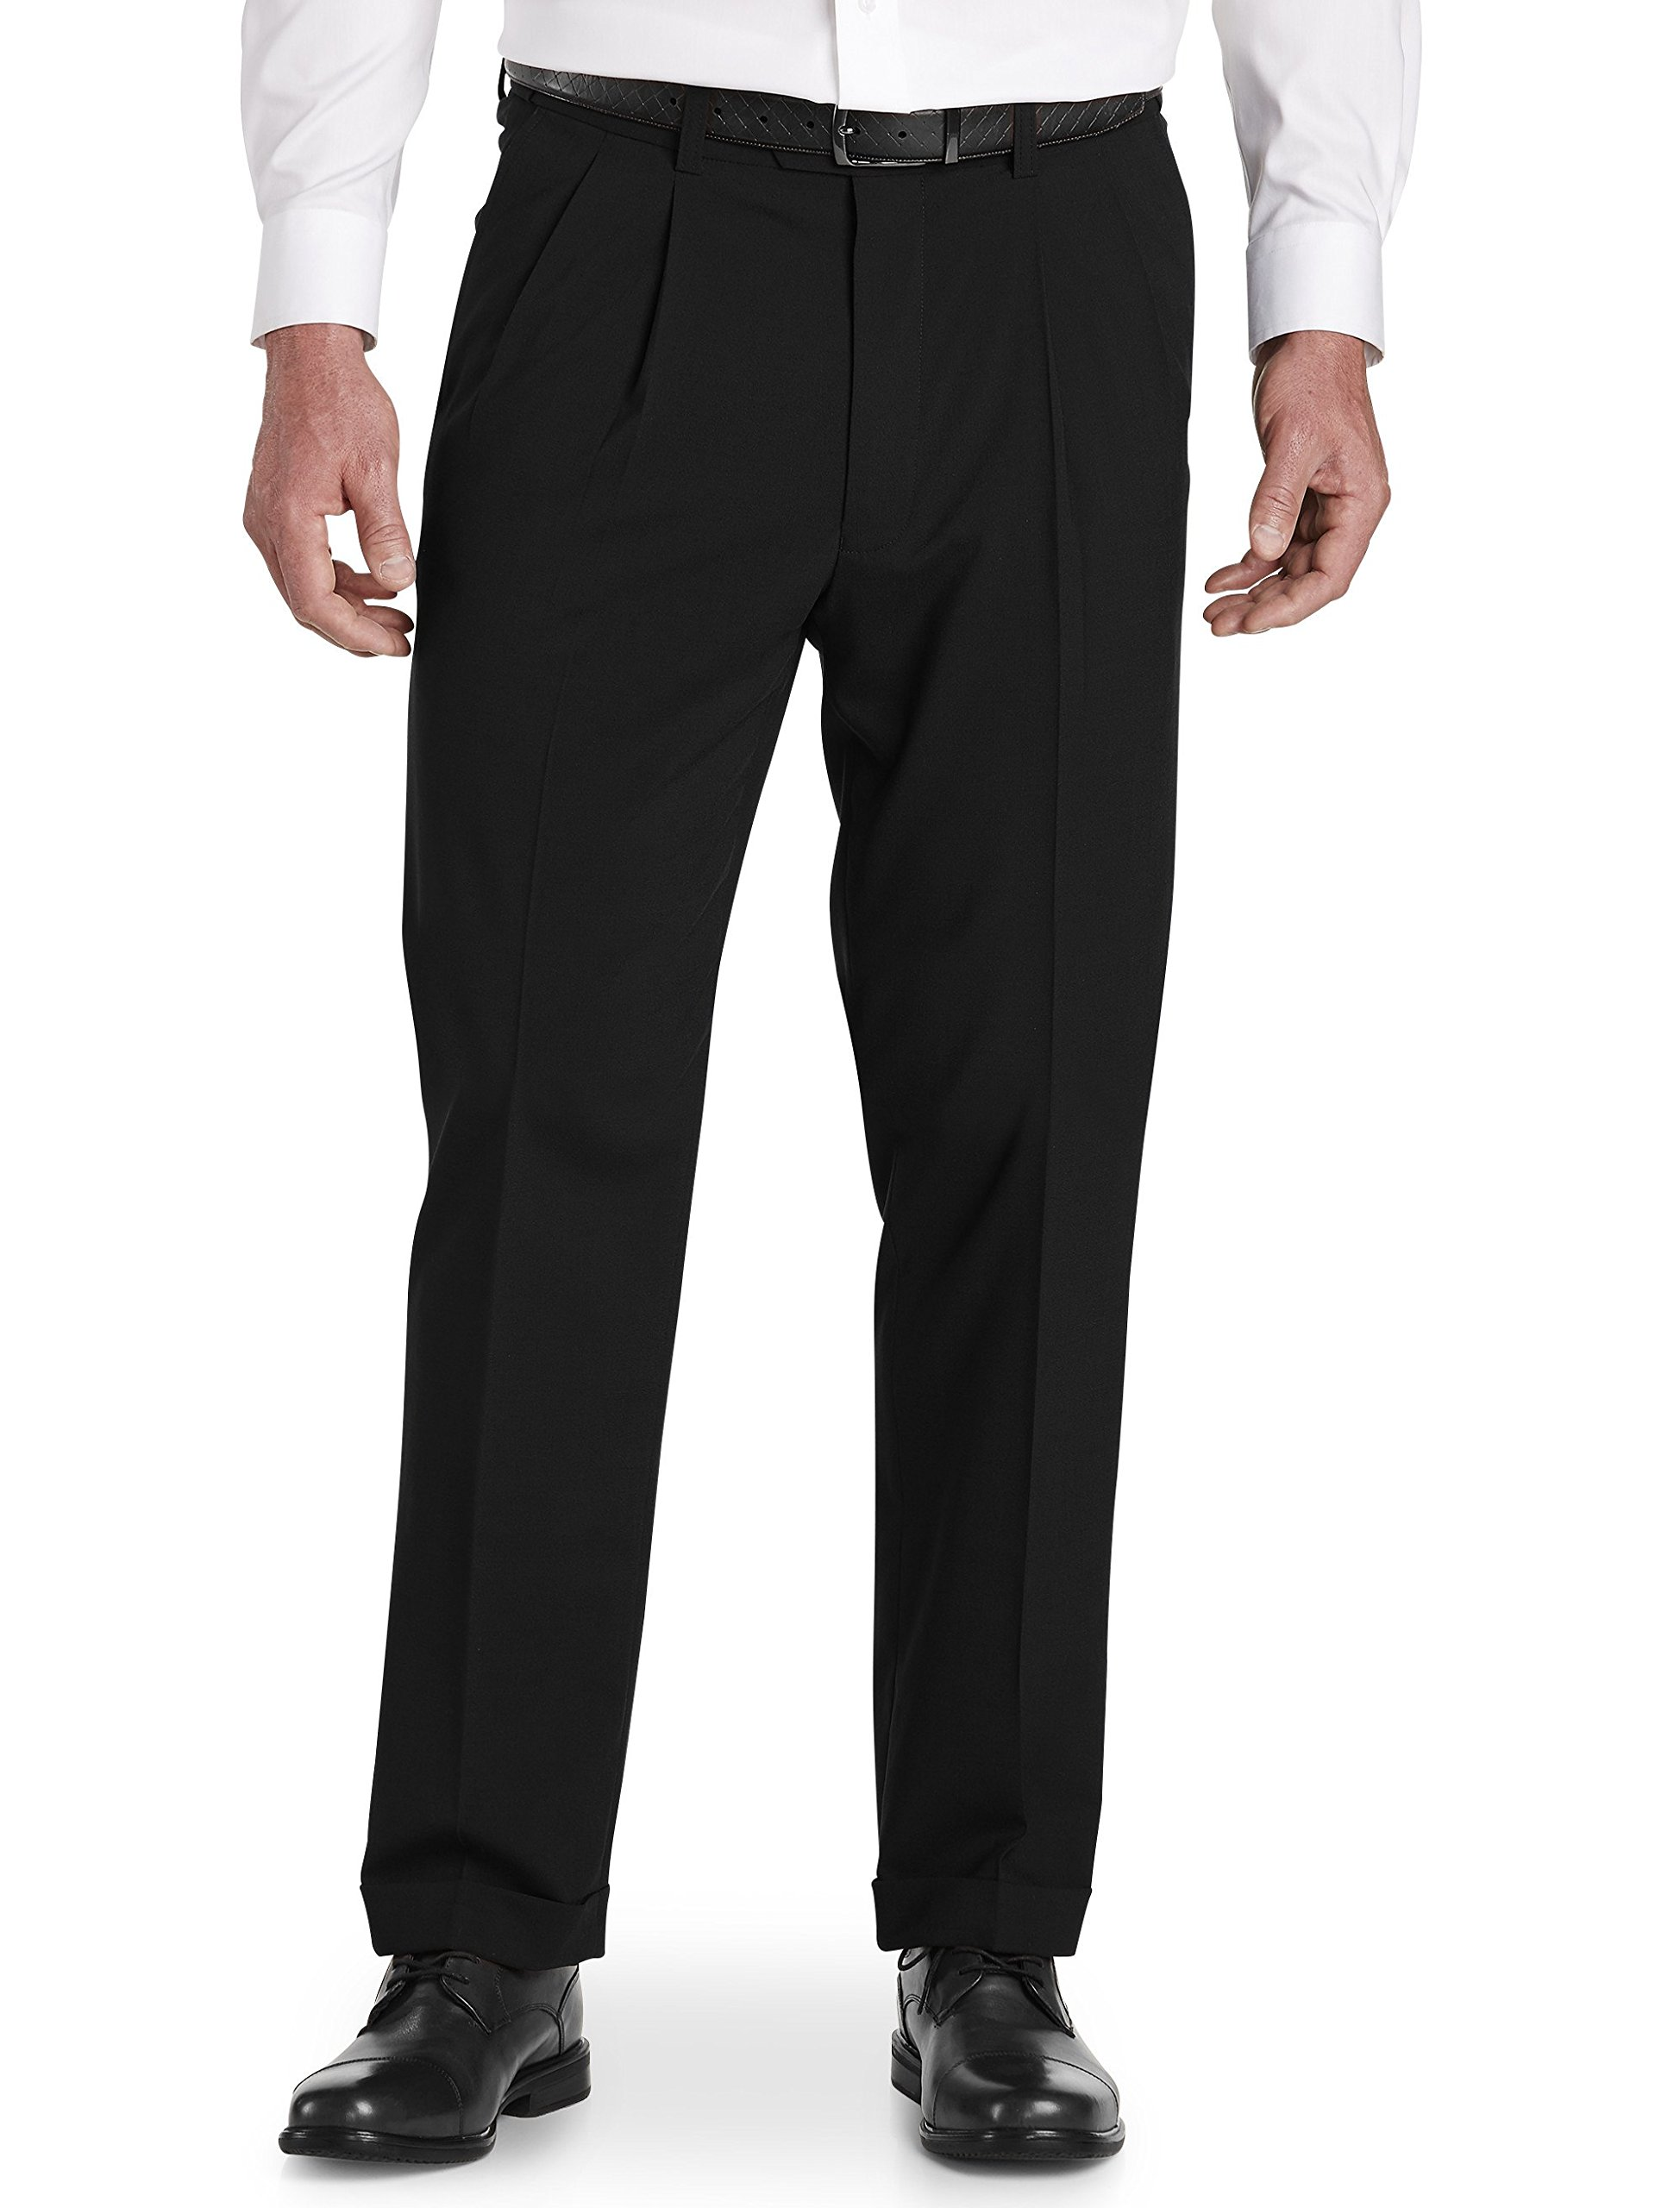 Gold Series by DXL Big and Tall Waist-Relaxer Hemmed Pleated Suit Pants Black by Gold Series